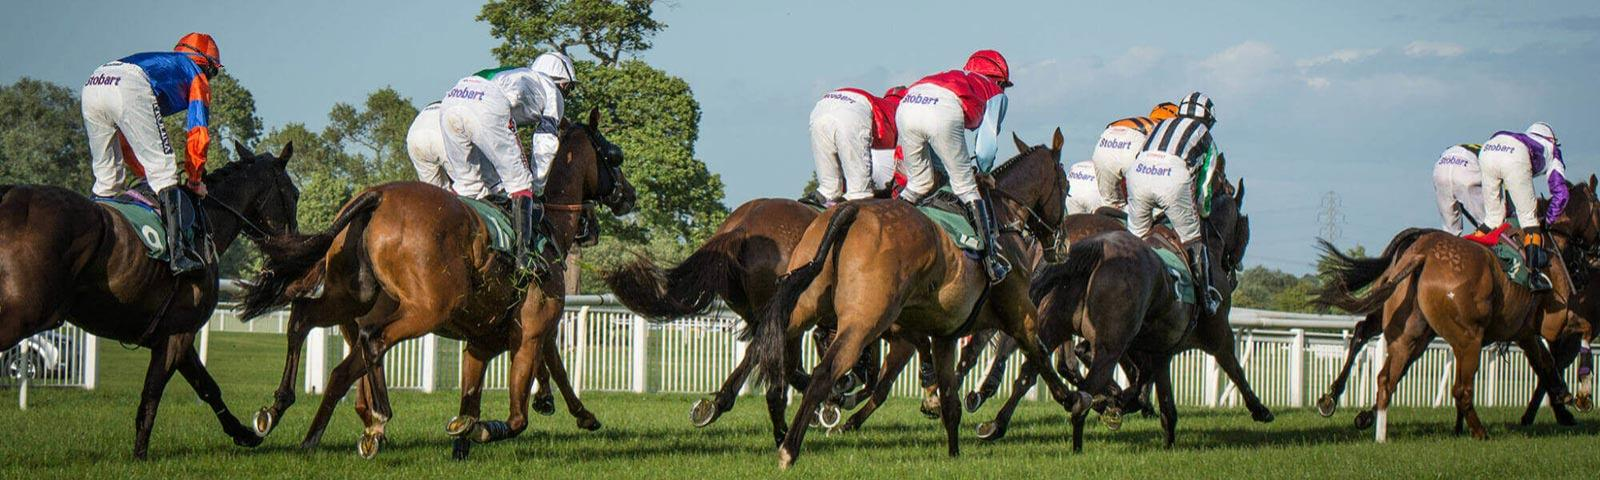 Group of jockeys racing at Uttoxeter Racecourse.